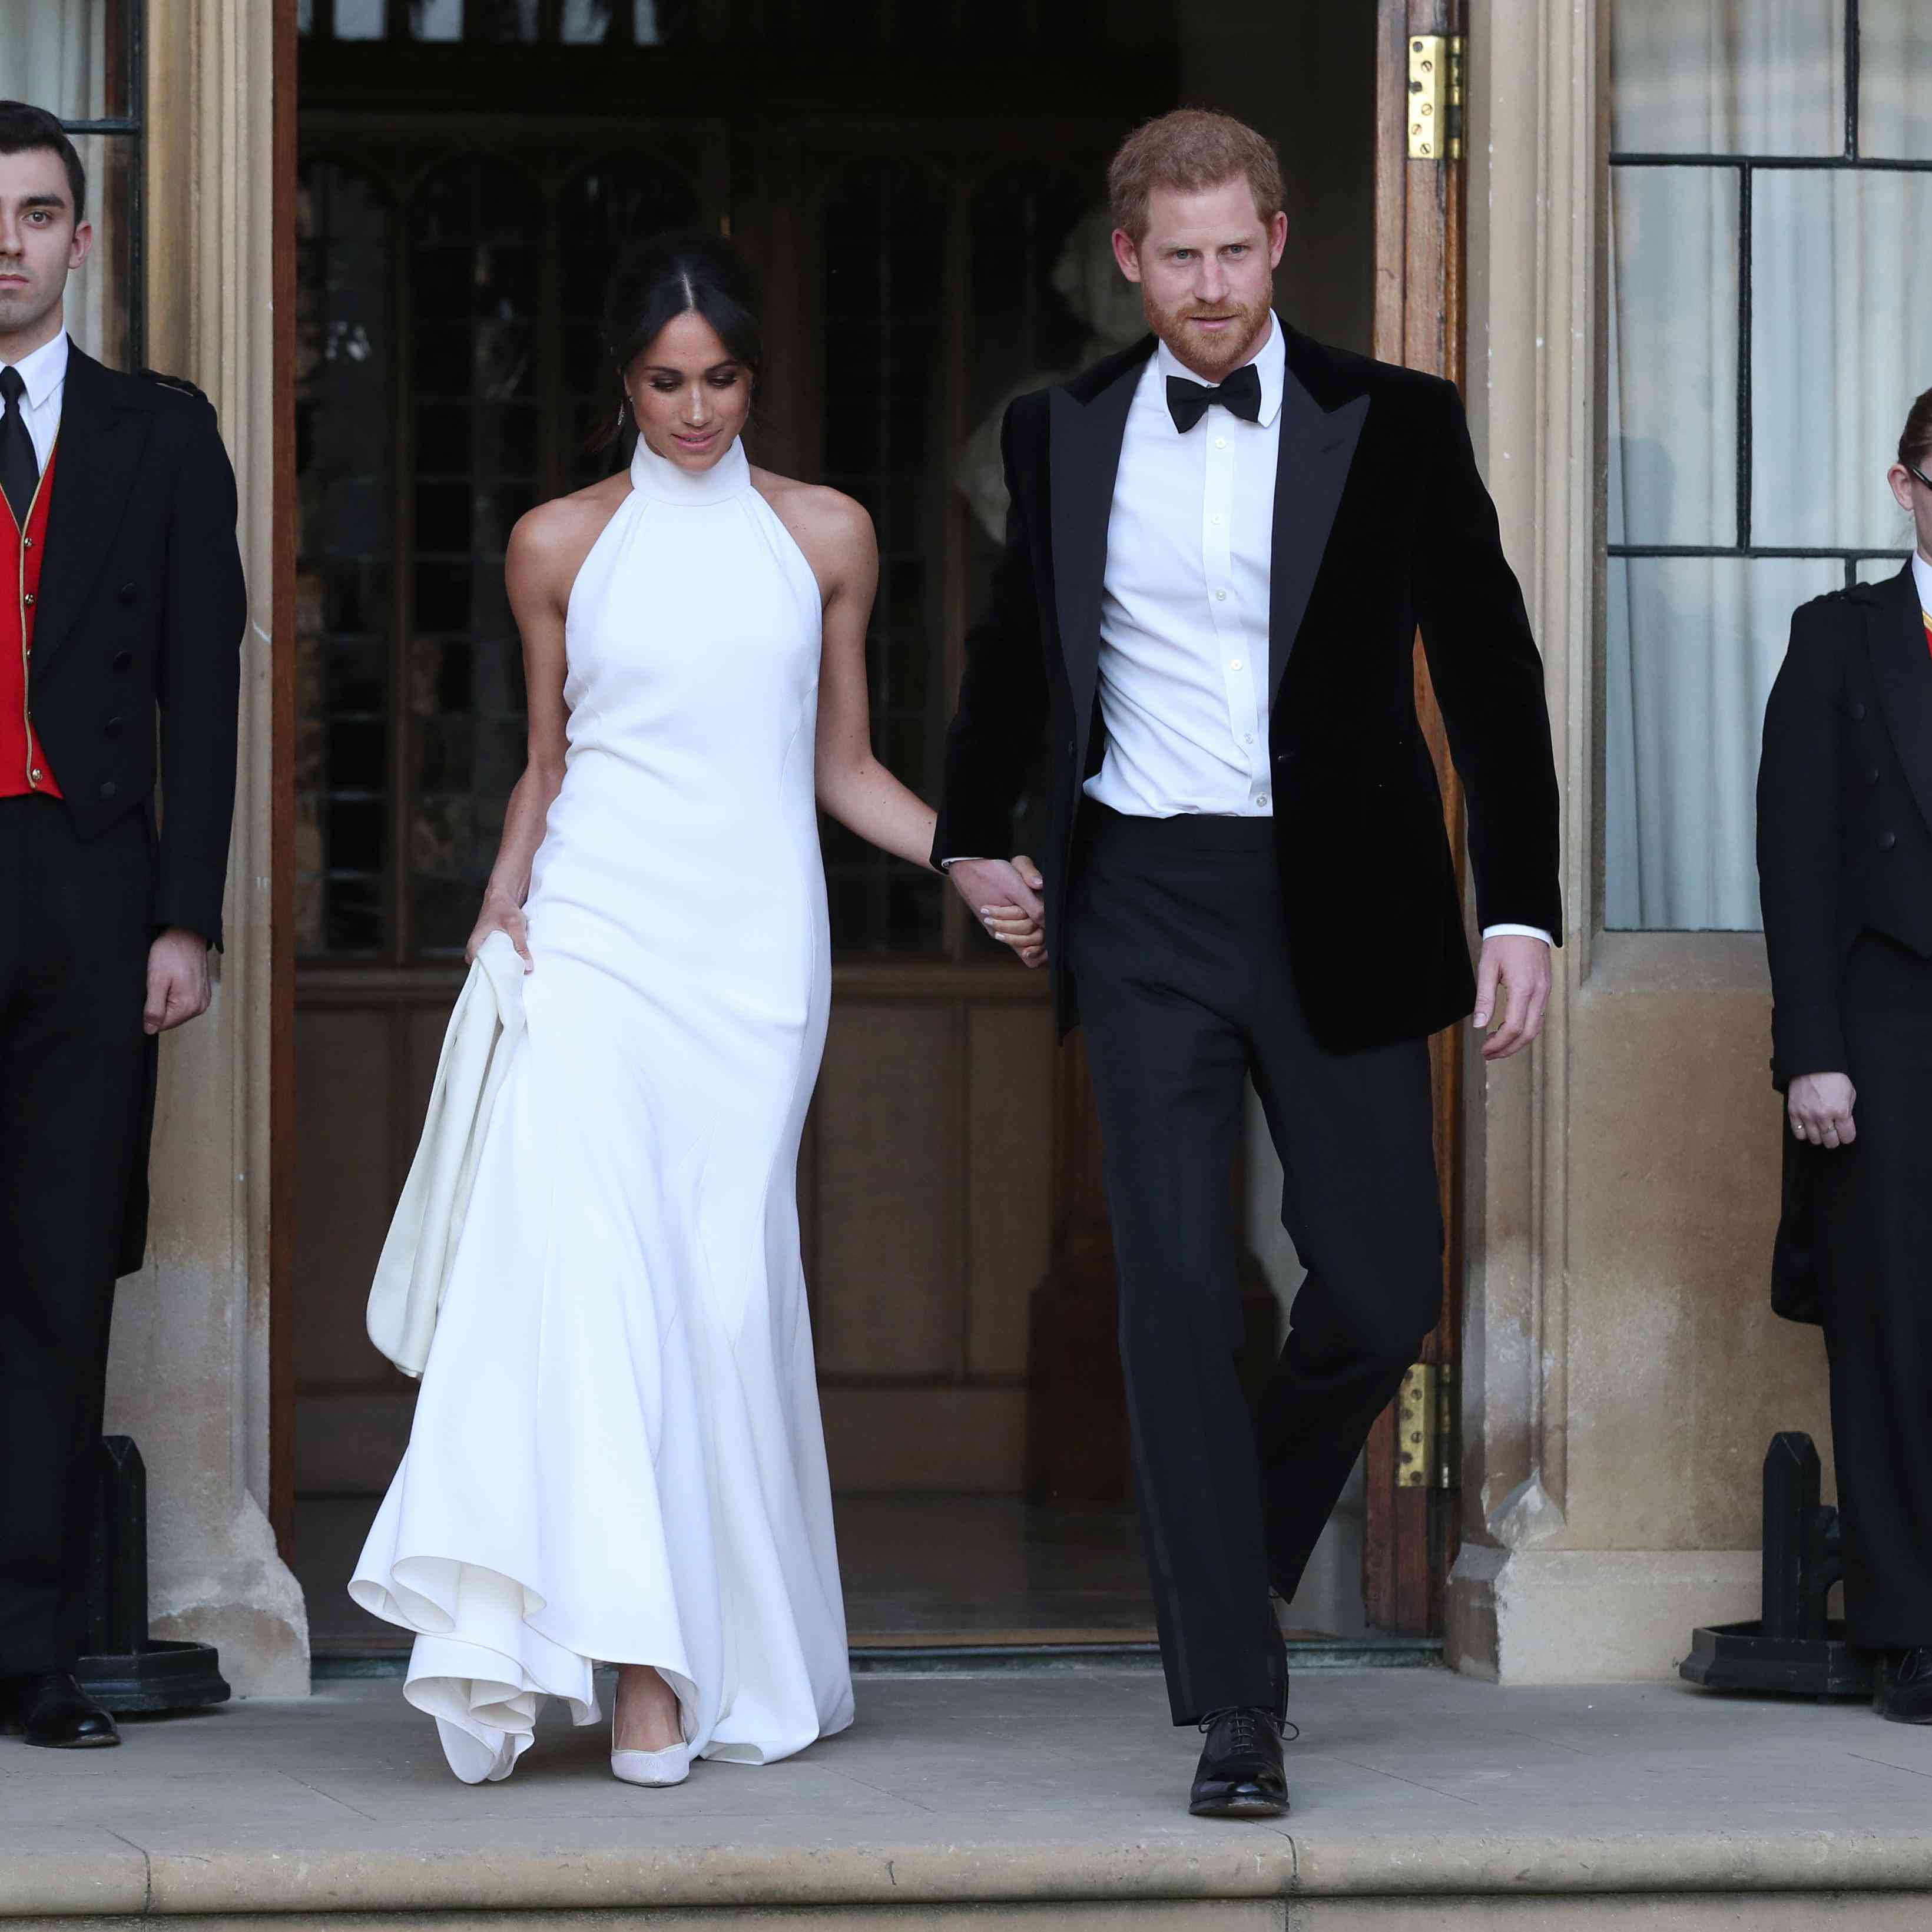 Meghan Markle Wedding Pictures.Meghan Markle S Second Royal Wedding Dress Get The Look